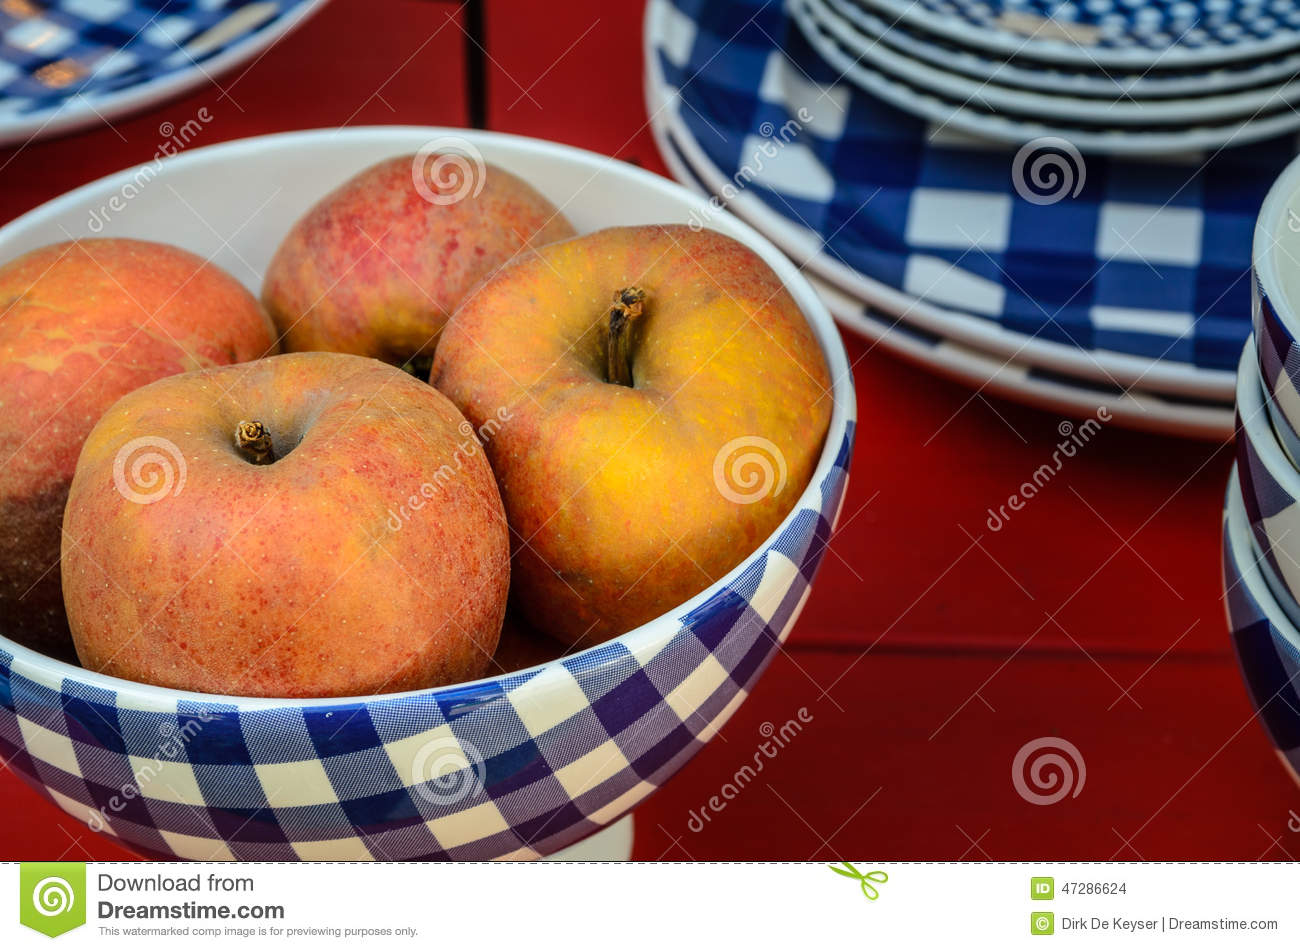 Red apples in blue and white bowl